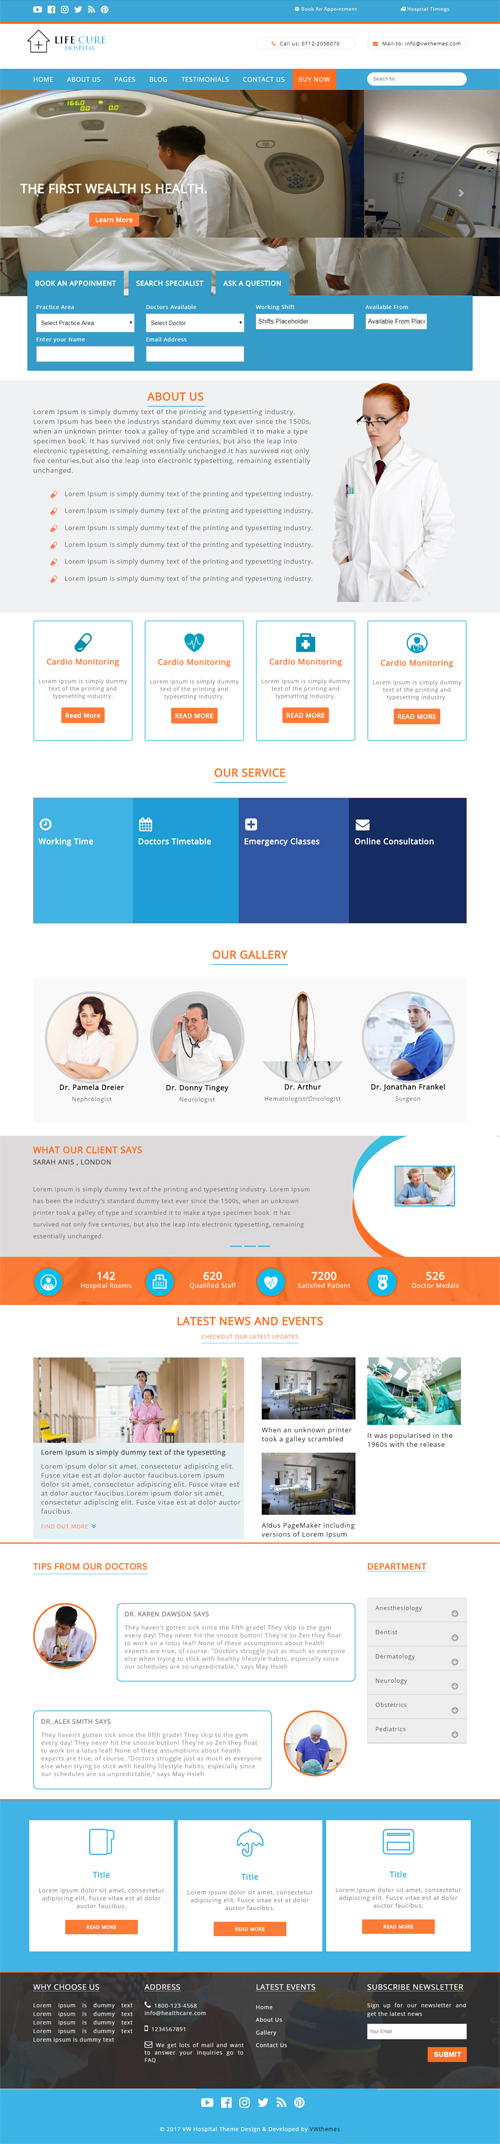 Hospital WordPress Theme